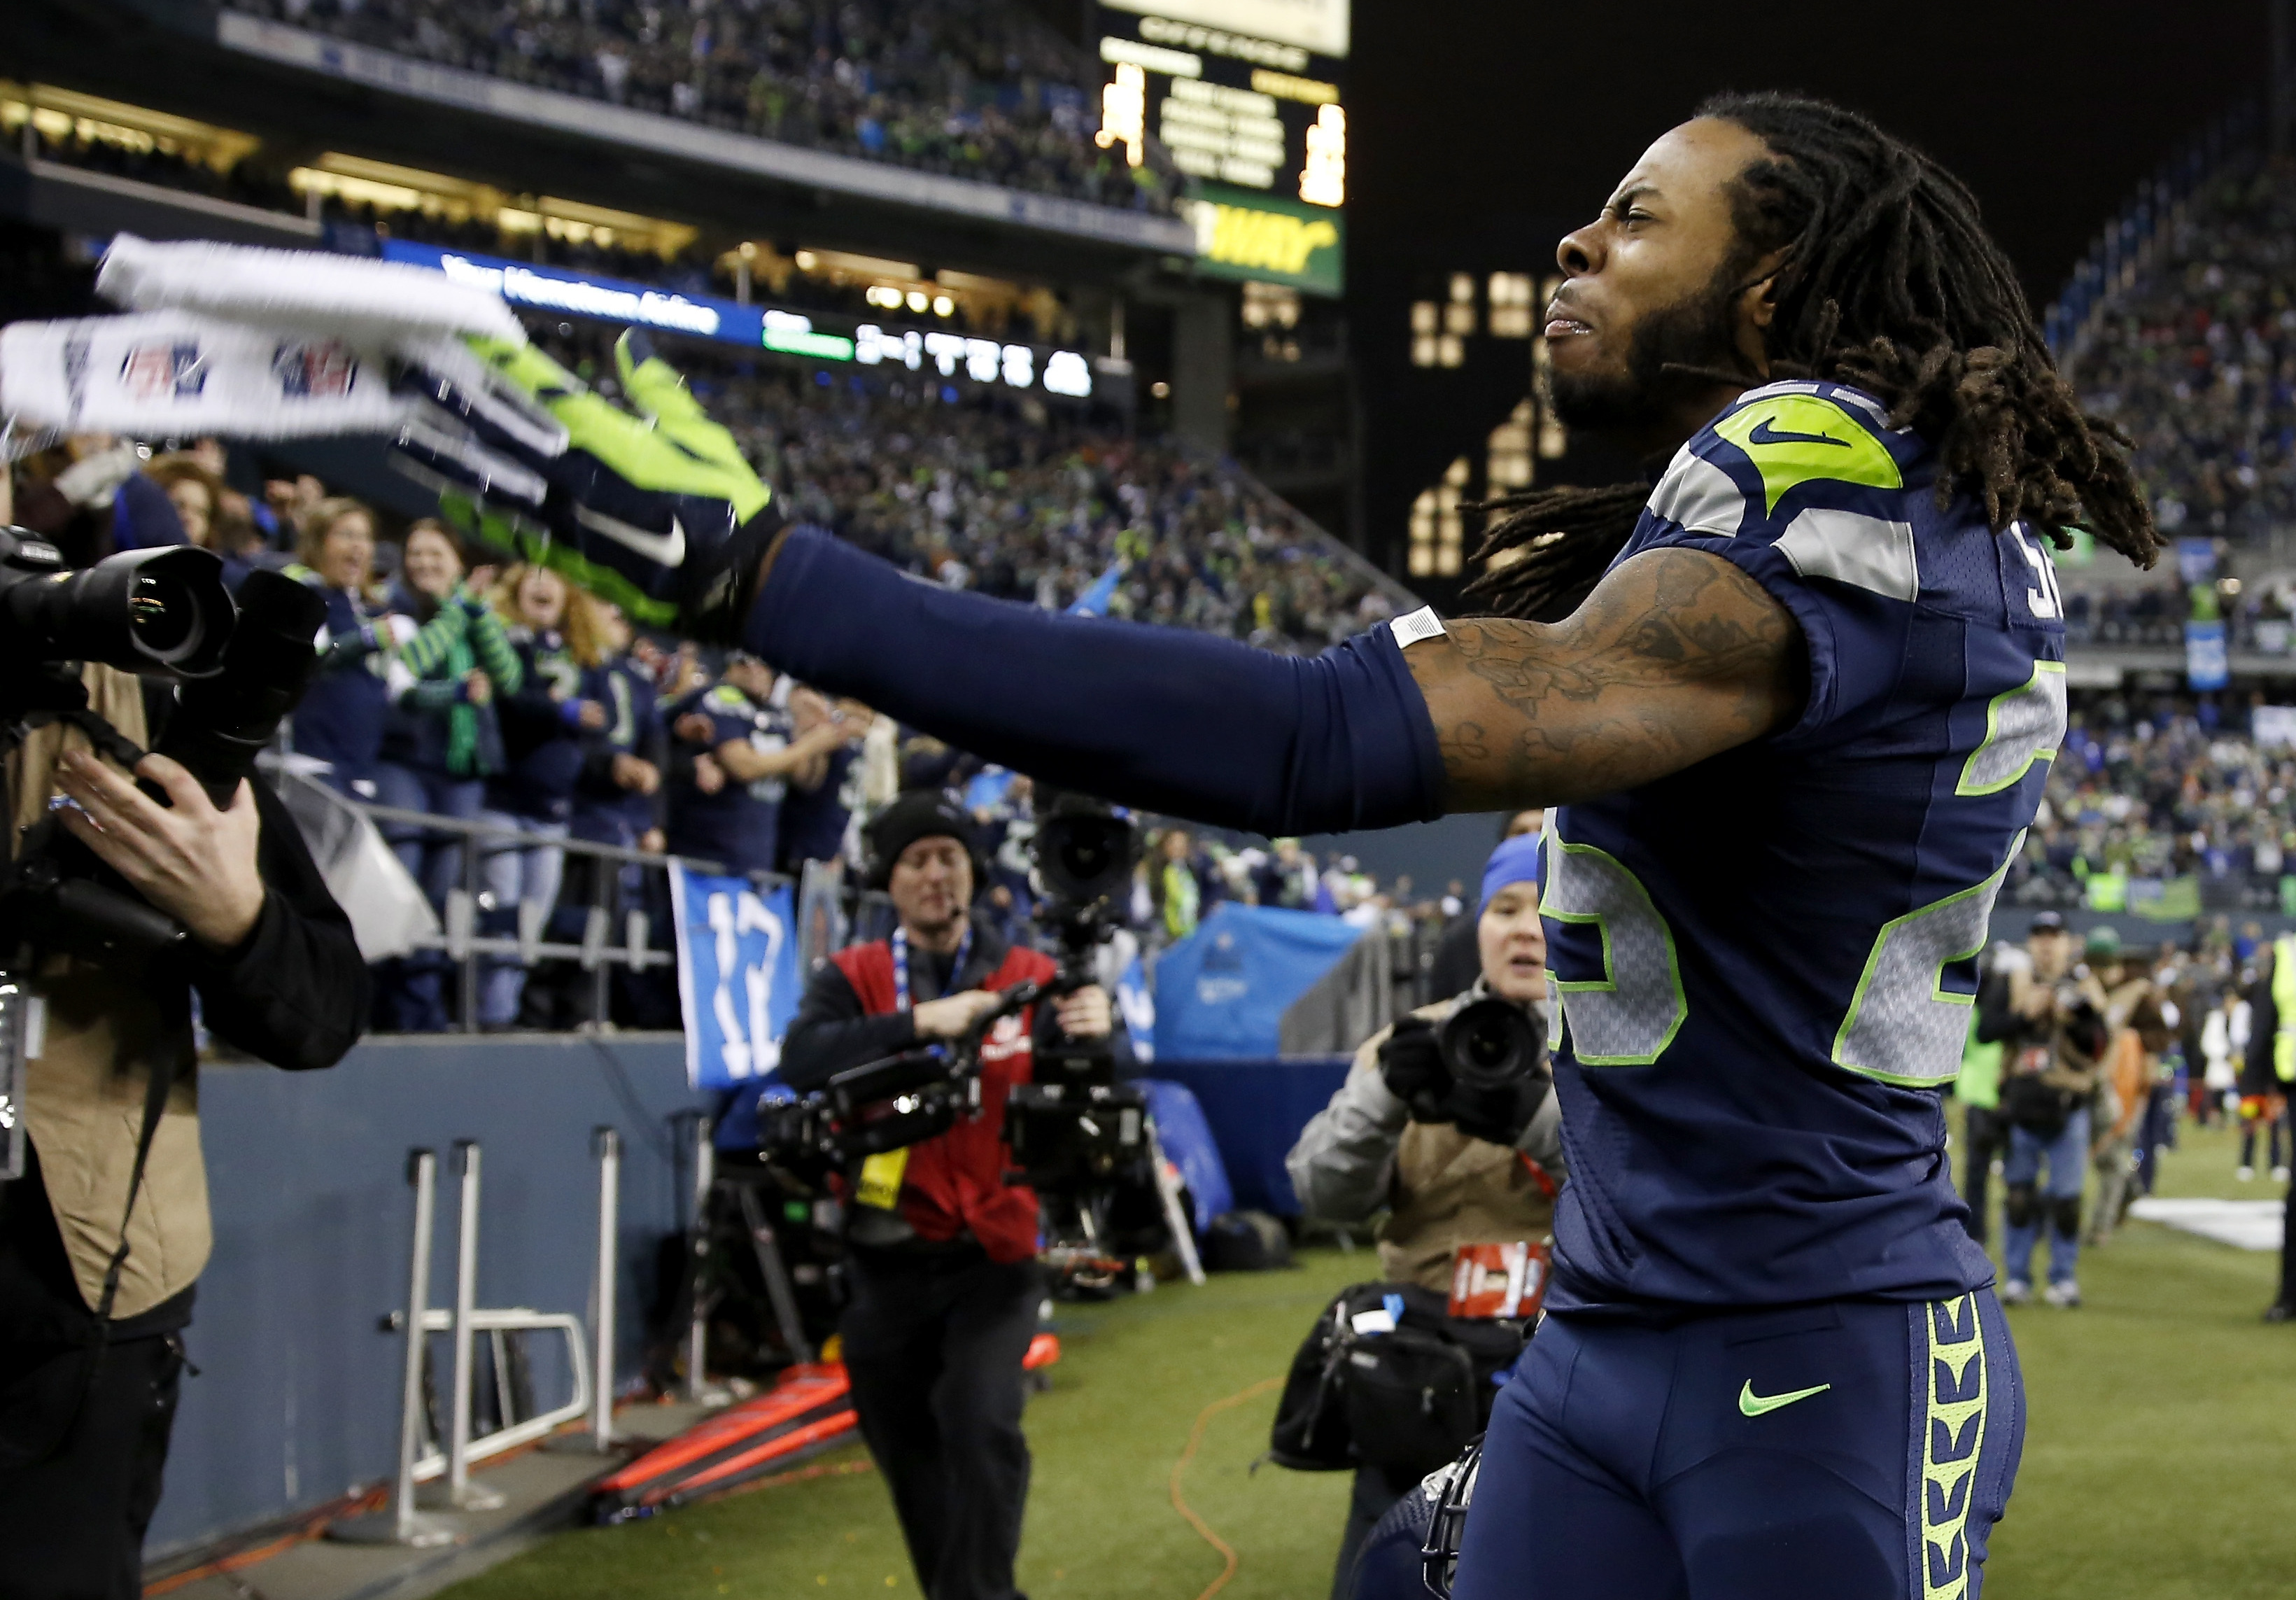 NFL Fines Seattle's Richard Sherman Nearly $8,000